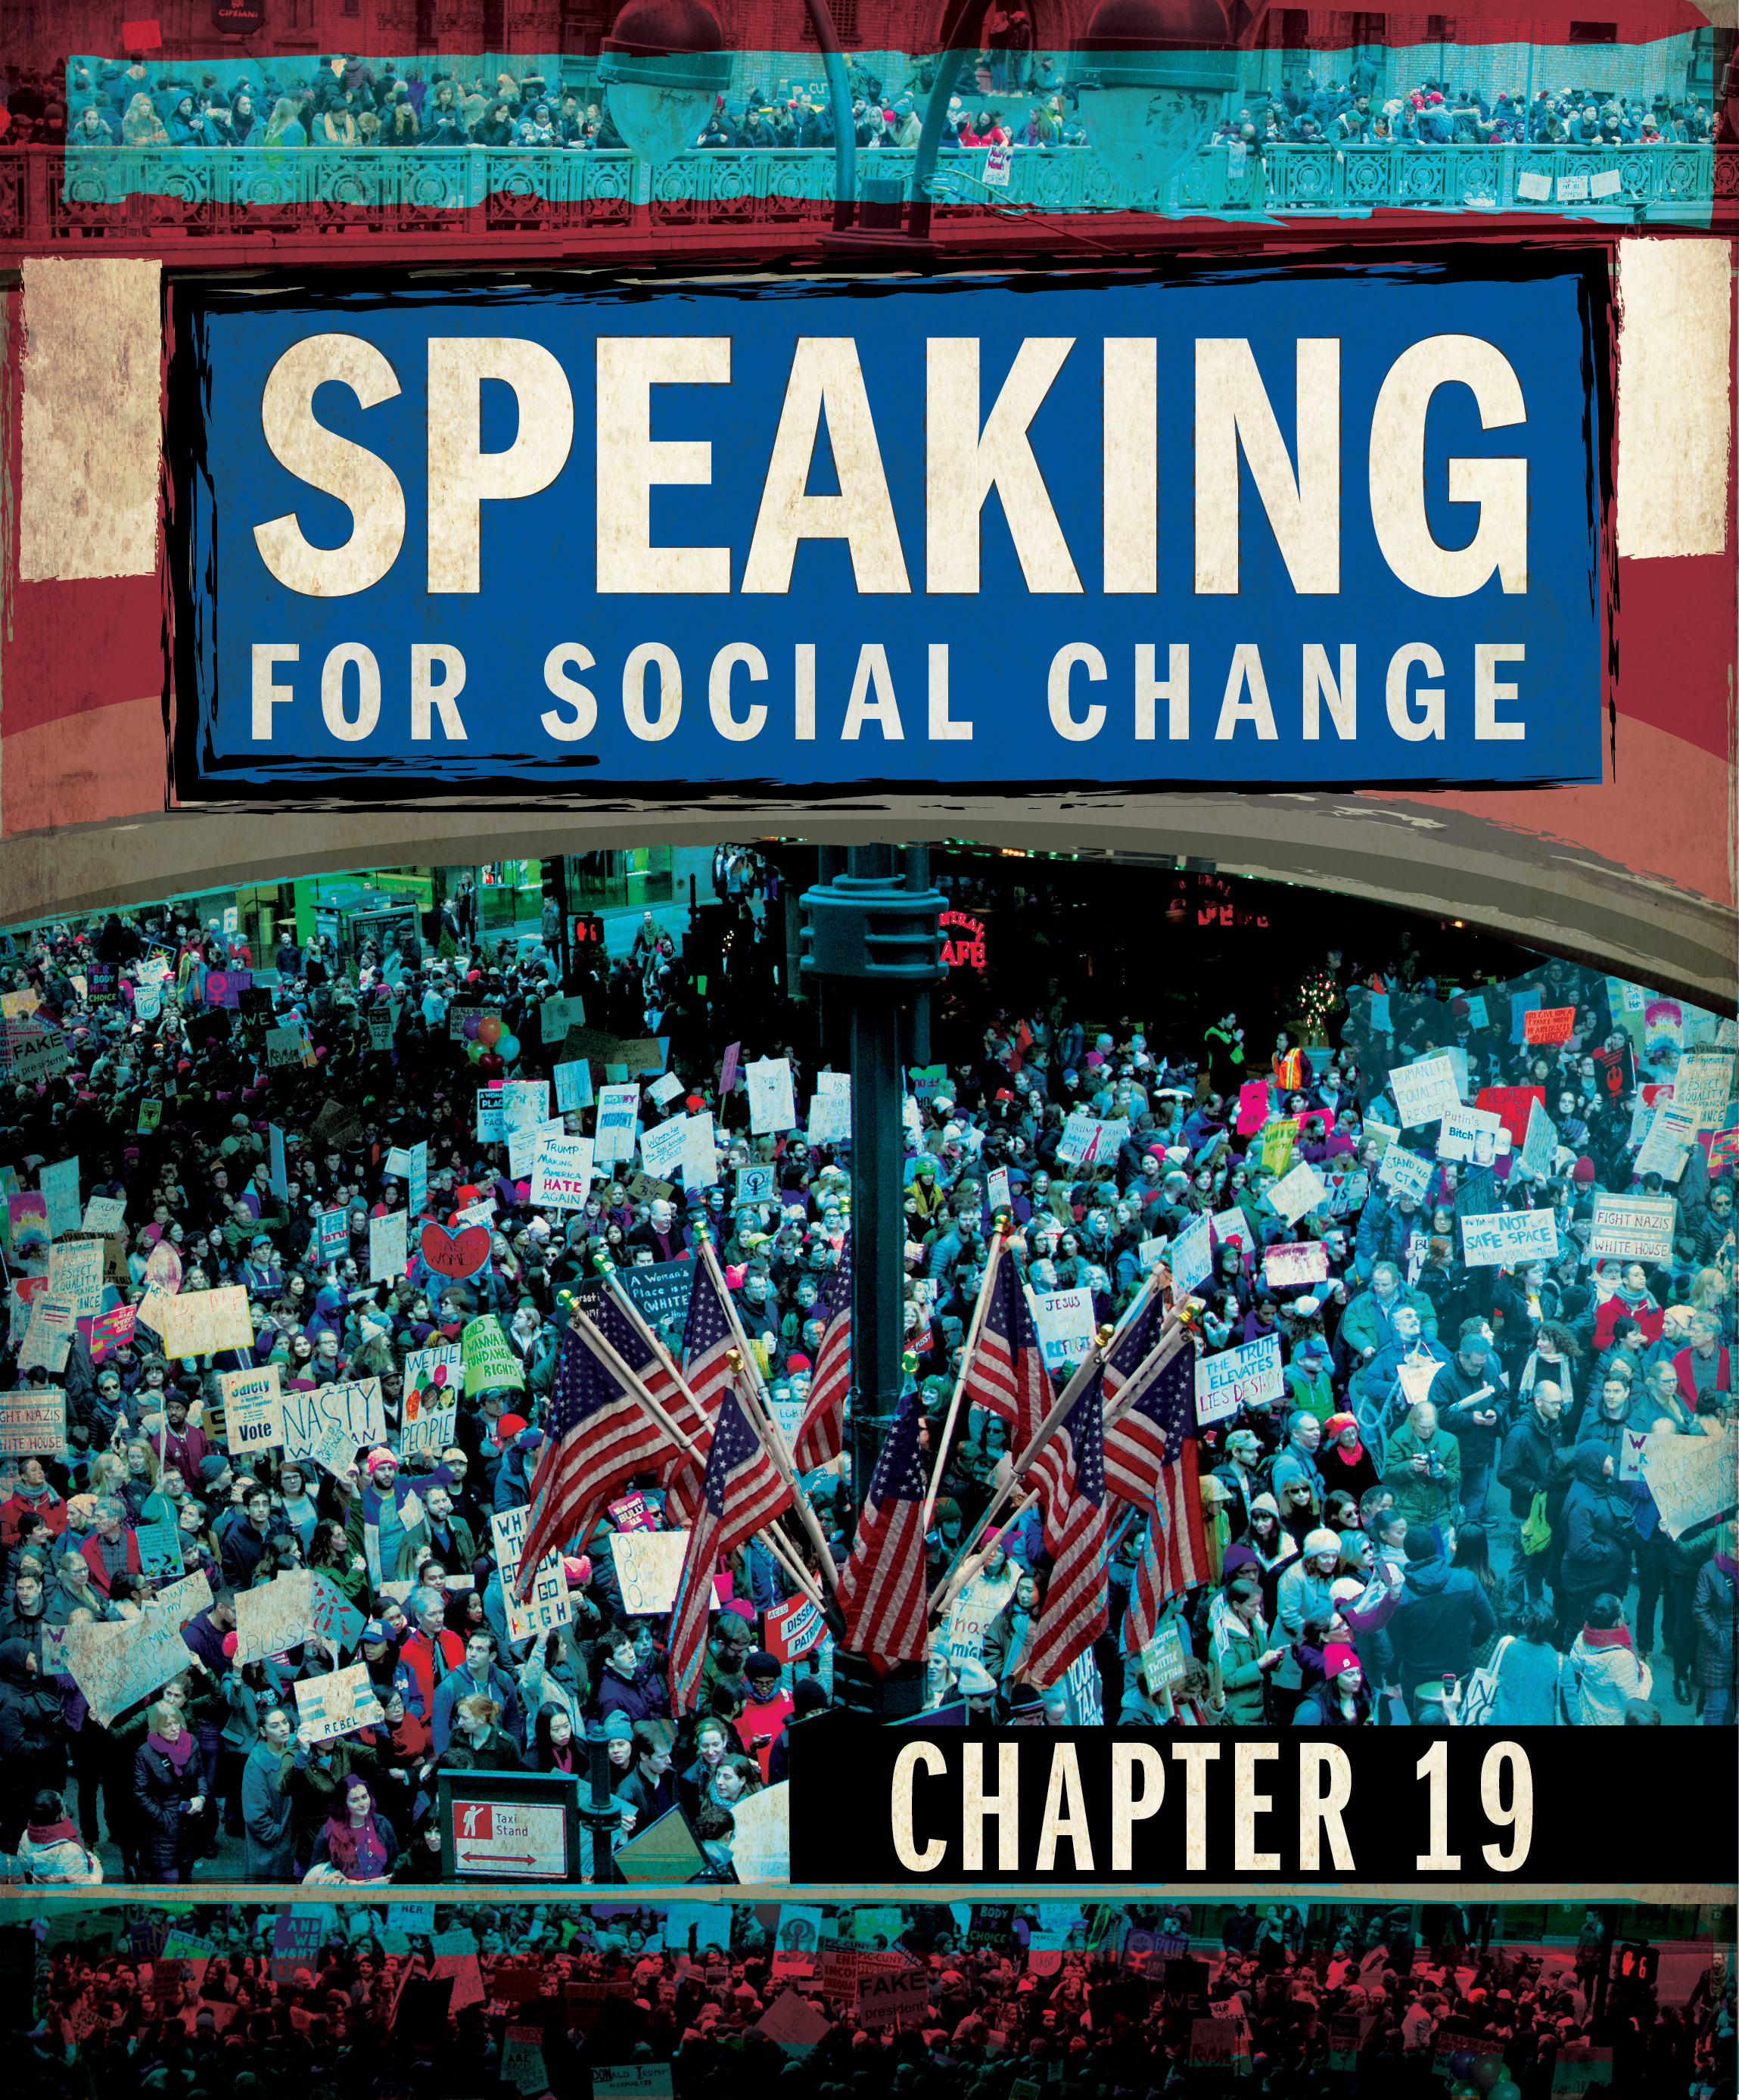 Chapter 19- full chapter on social change